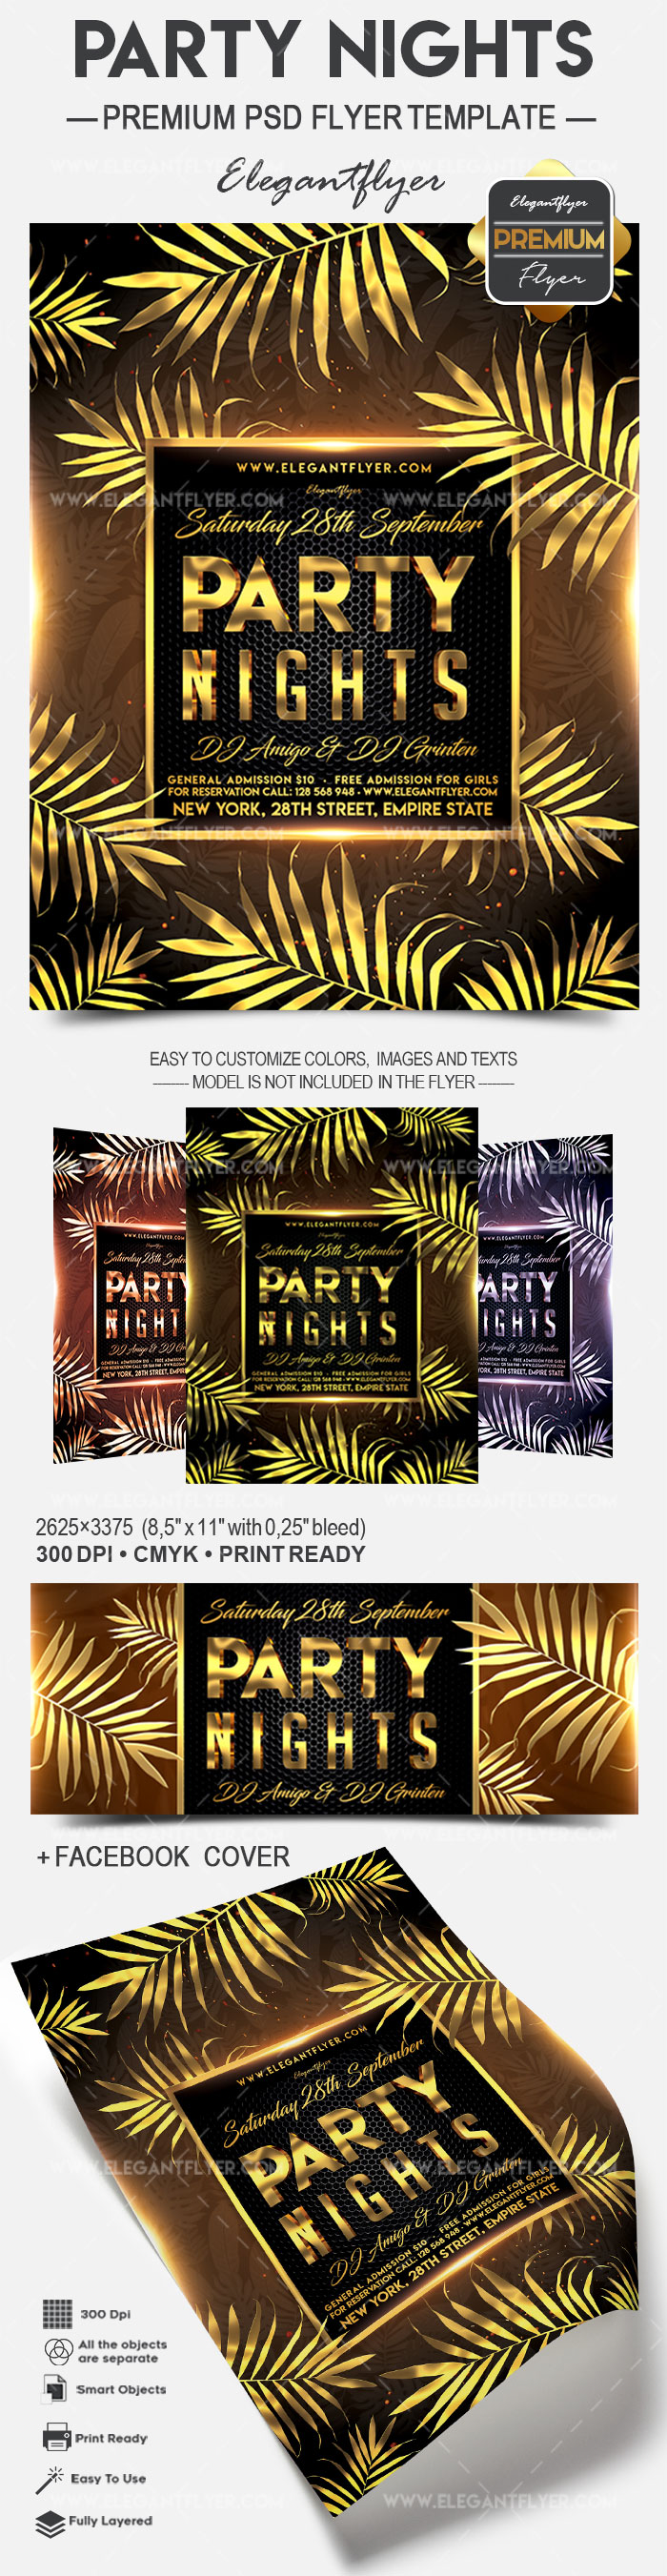 Party Nights – Flyer PSD Template